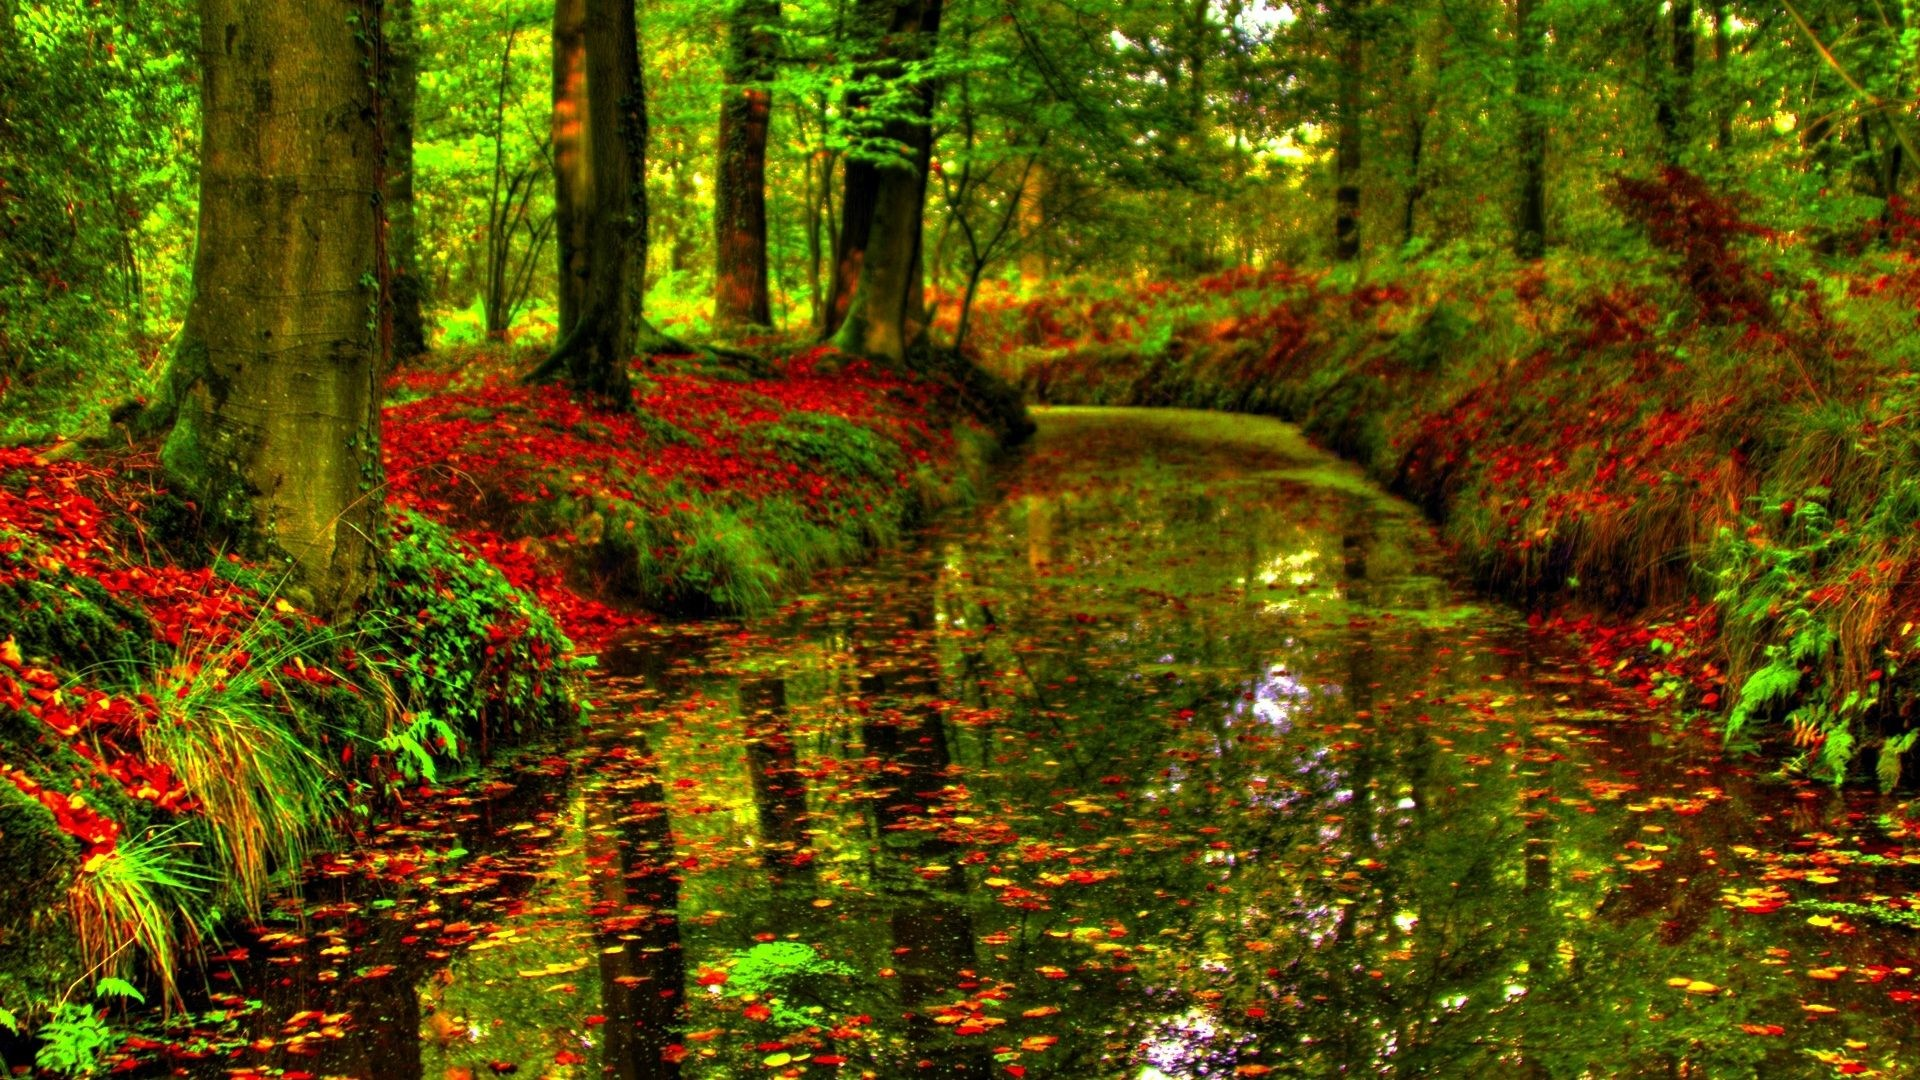 1920x1080 Canal Autumn Leaves Forest HD Wallpaper 1080p - 1920x1200